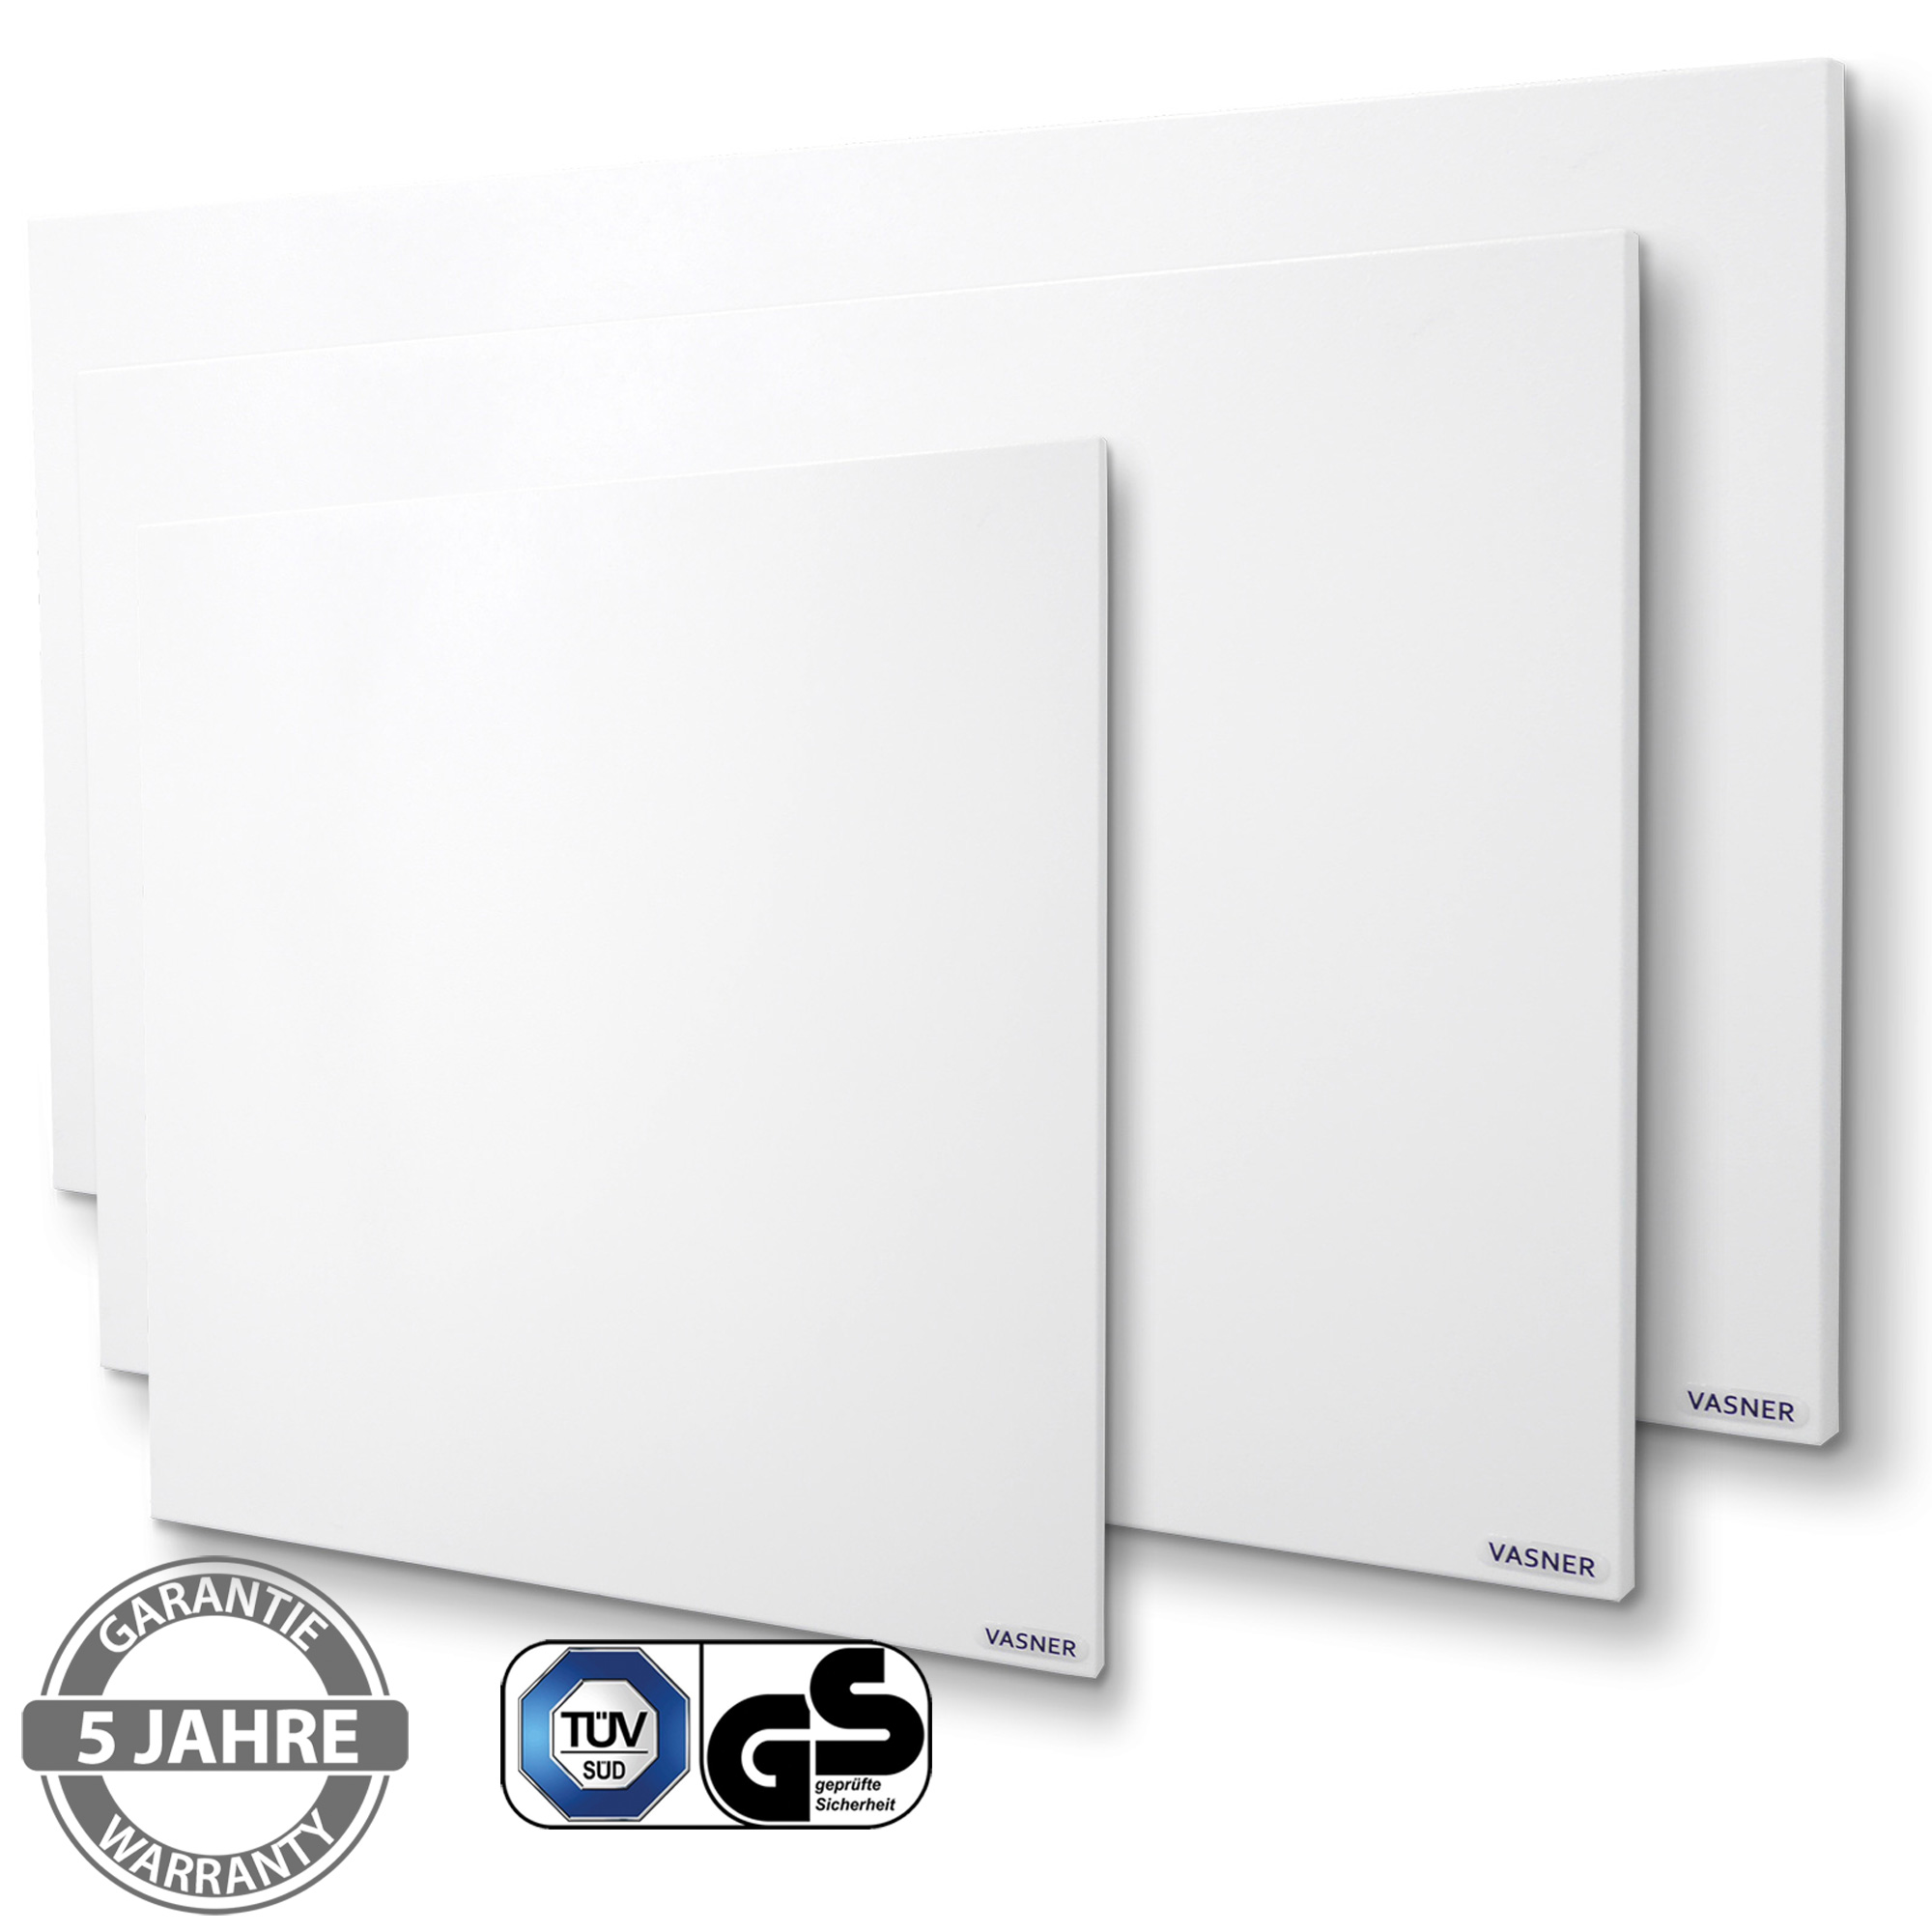 infrared-panel-output-size-heating-costs-energy-consumption